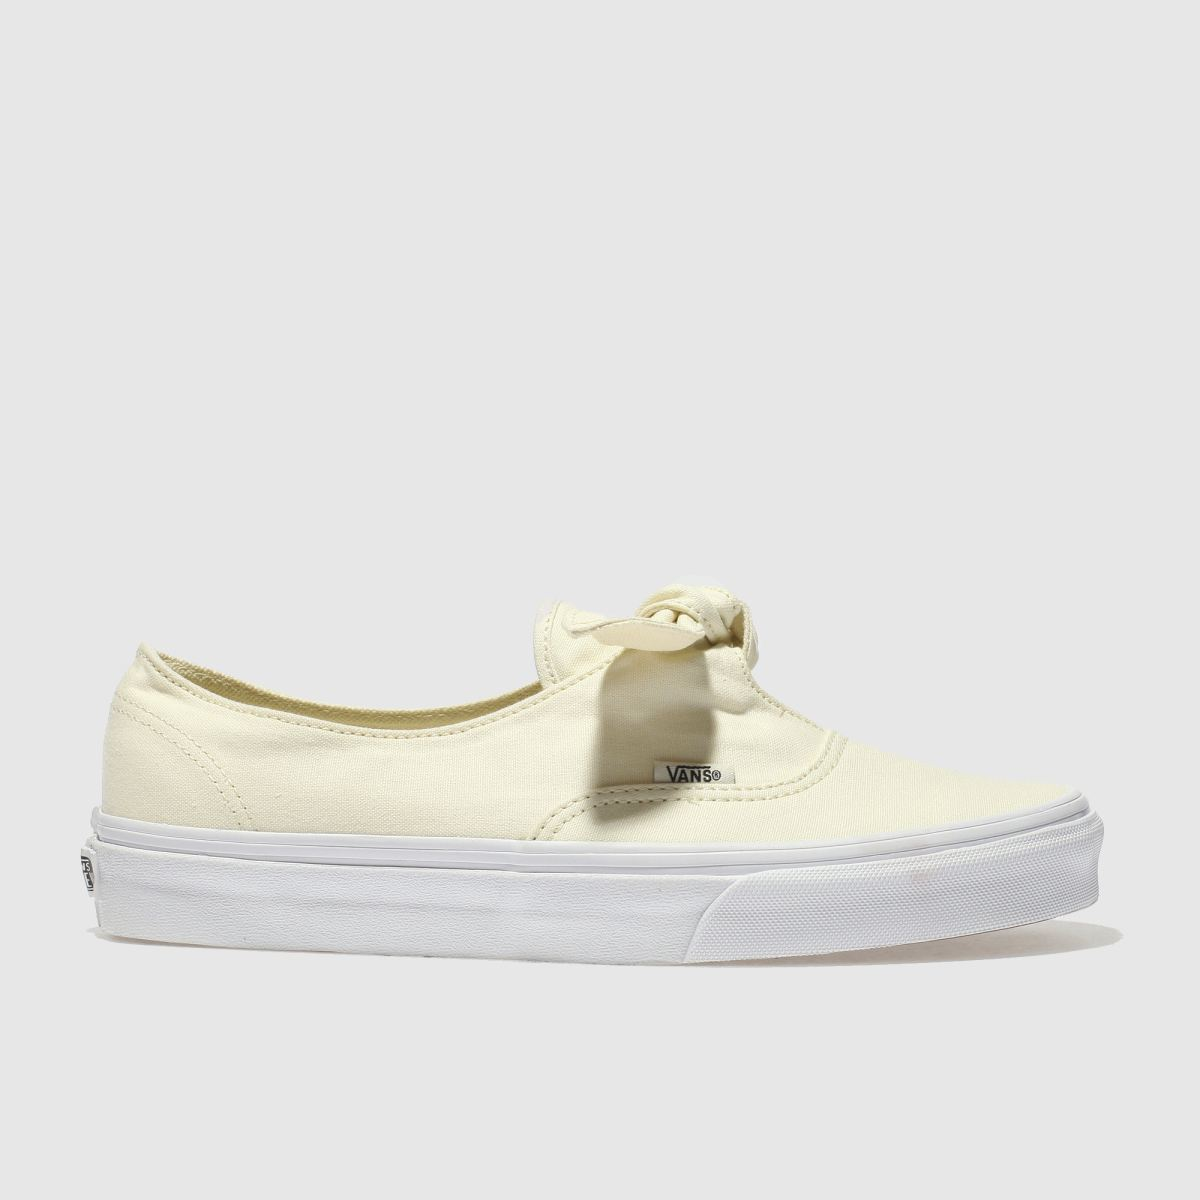 Vans Stone Authentic Knotted Canvas Trainers